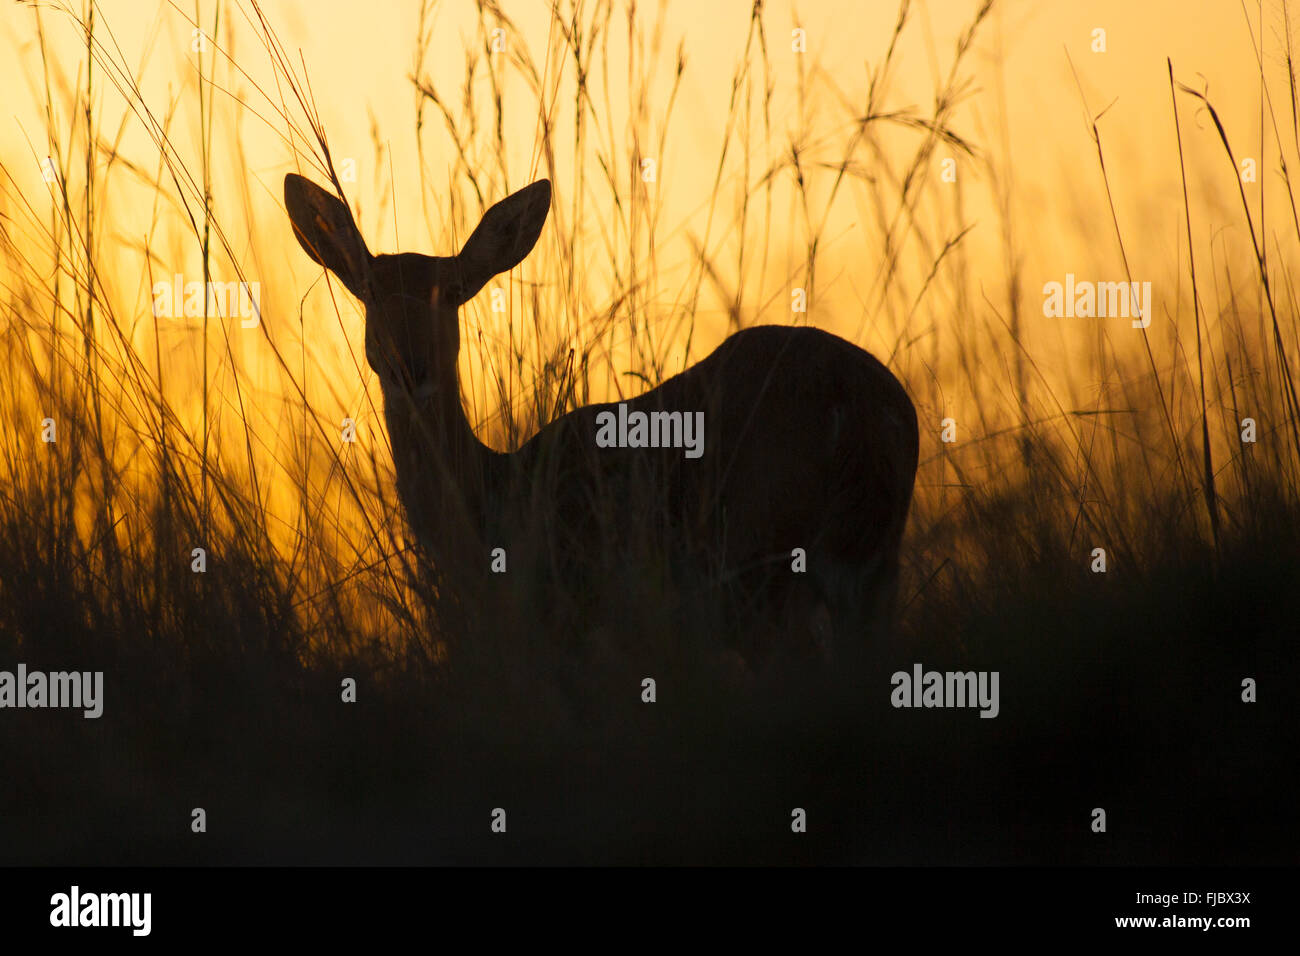 Antelope in the sunset - Stock Image